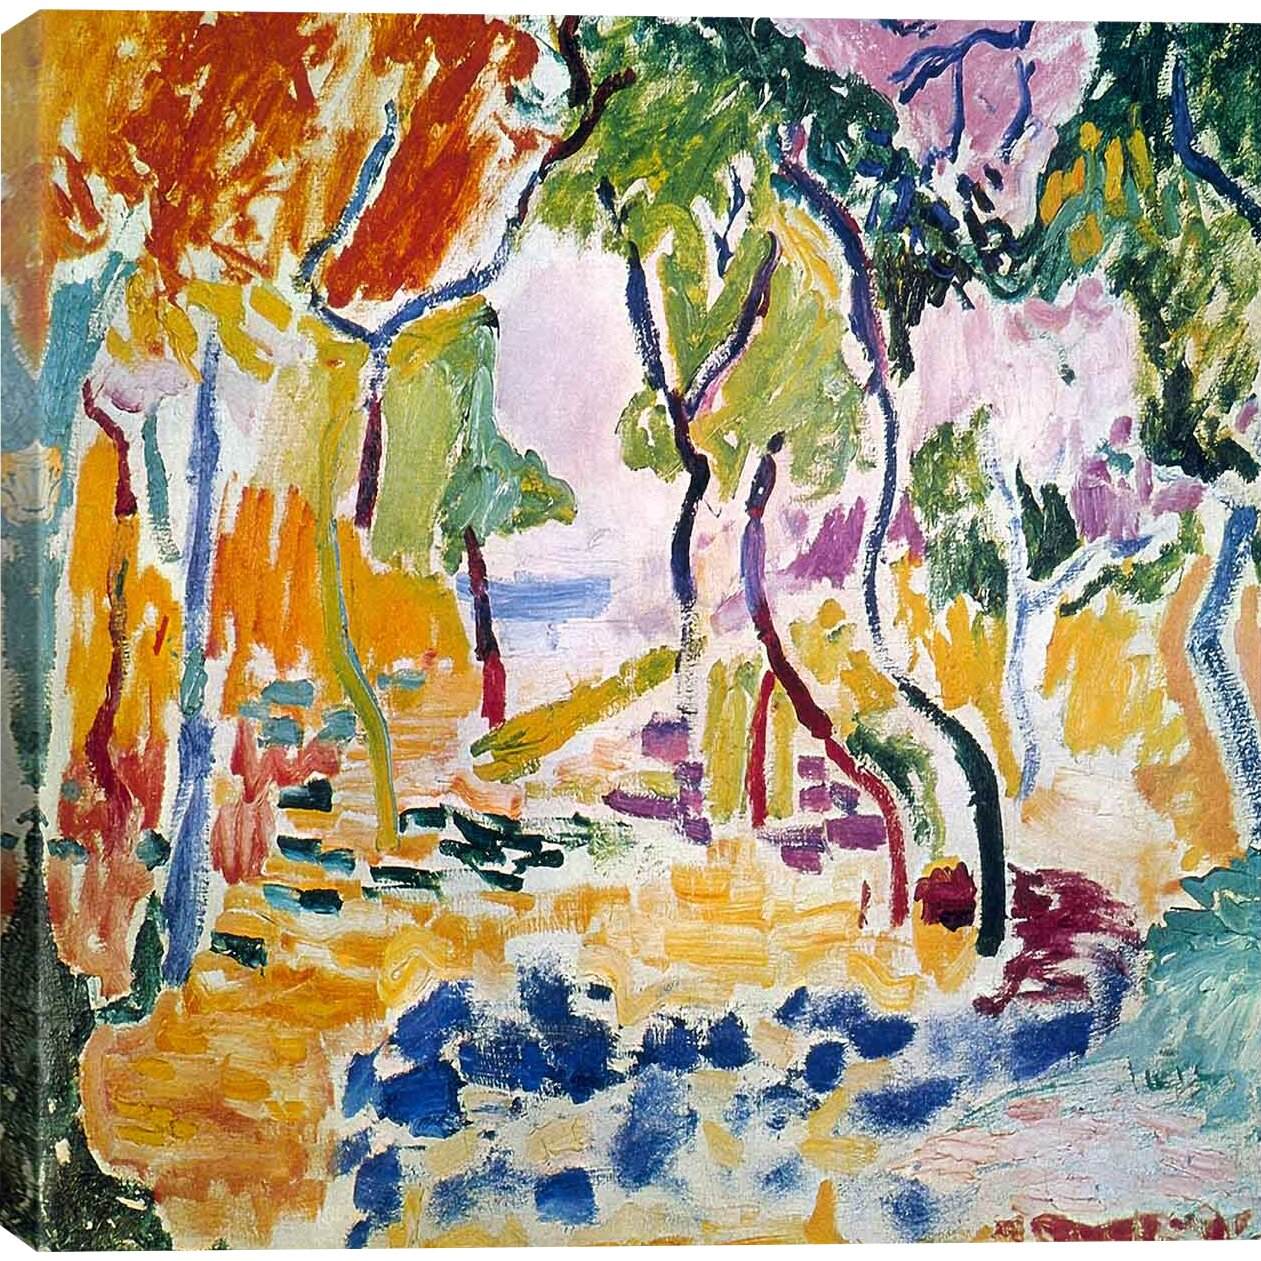 Icanvas The Joy Of Life 1905 By Henri Matisse Painting